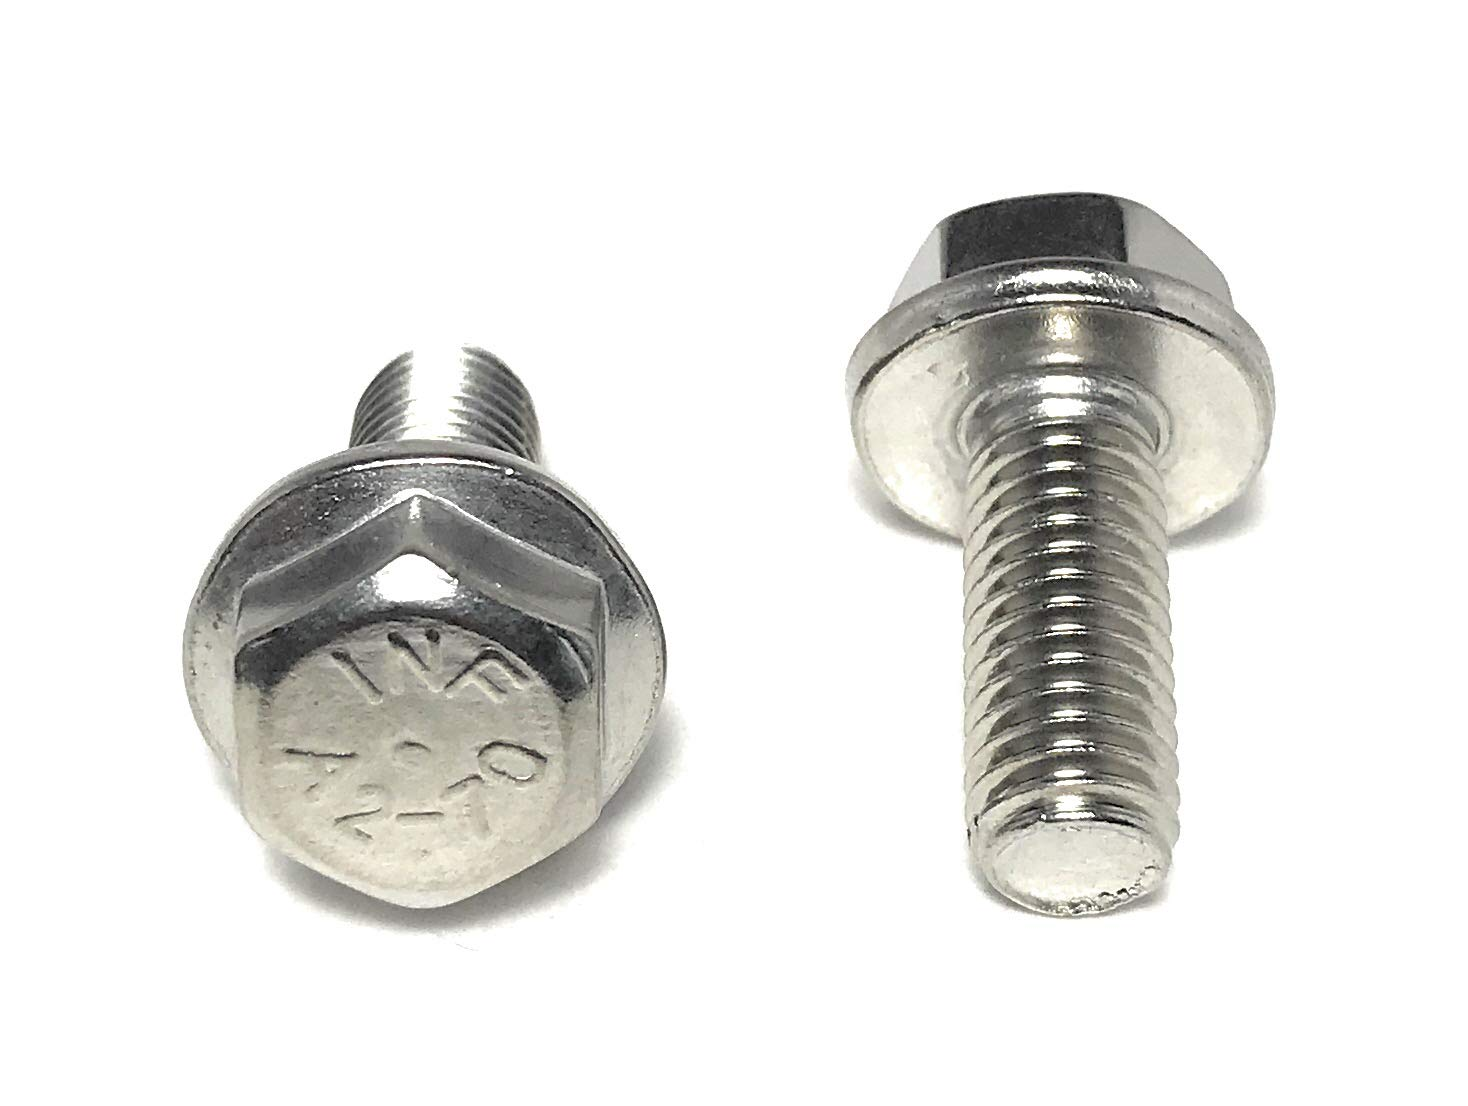 Bolt Base 8mm A2 Stainless Steel Flanged Hex Head Bolts Flange Hexagon Screws DIN 6921 M8 x 40-5